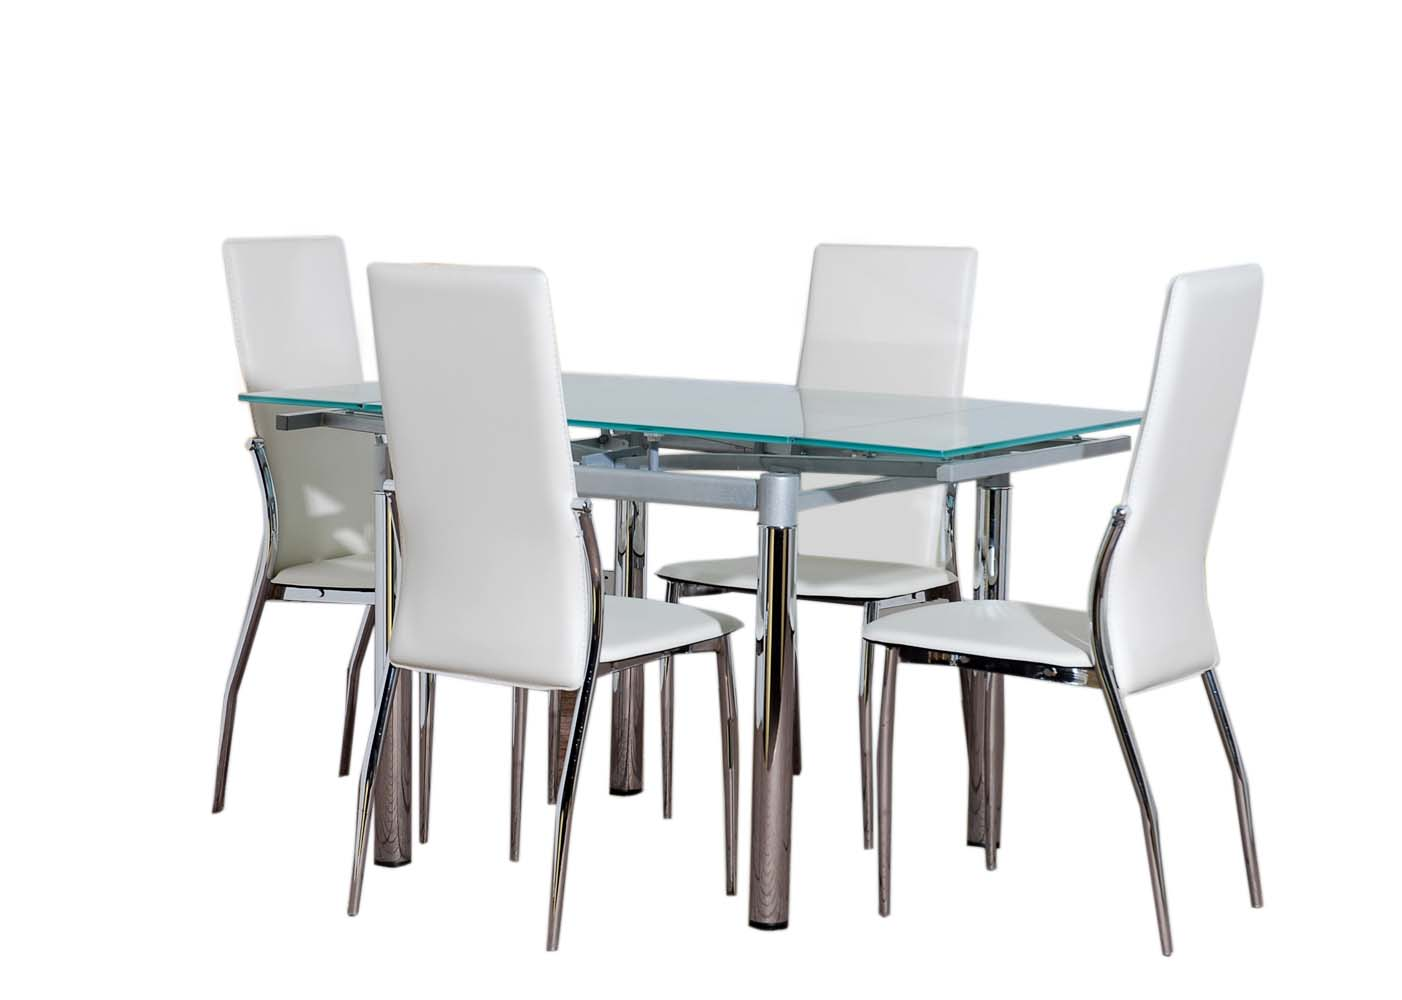 Glass dining table furniture and 4 cream chairs set ebay for Dining table and chairs